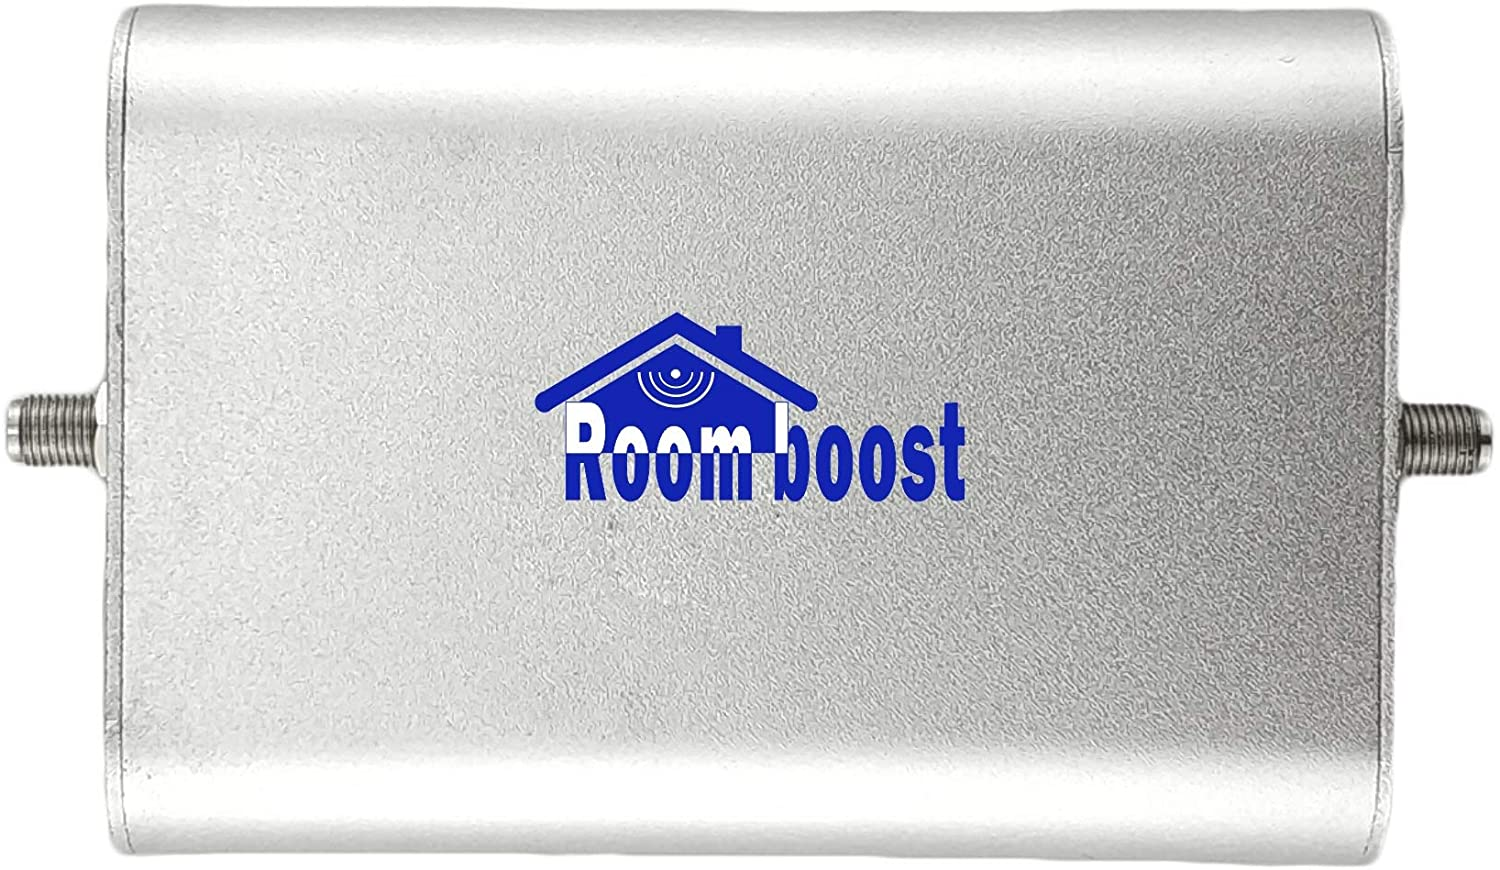 B07P9G3NZY Roomboost 700MHz AT&T T-Mobile Cell Phone Signal Booster for Home and Office 4G LTE Band12/17 Host only. 71CGN-MDQKL